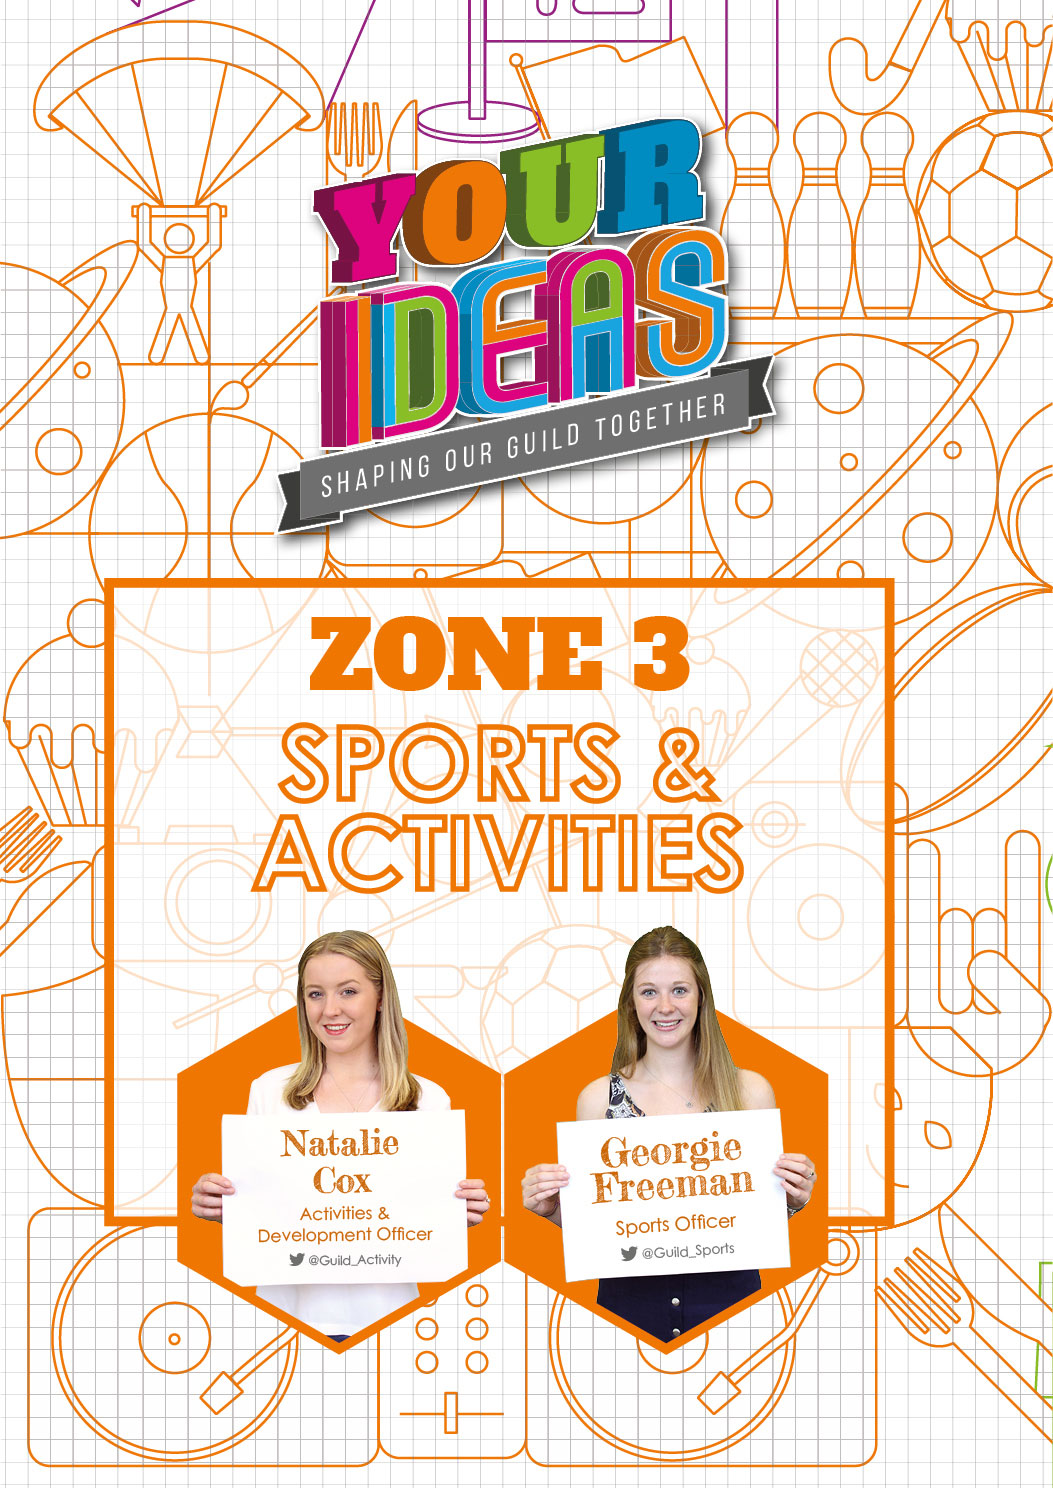 here you can find all of the Ideas related extracurricular activities, including societies and sports teams at Birmingham. Natalie, your Activities and Development Officer, and Georgie, your Sports Officer, take care of the ideas in this Zone. Get in touch with them to find out more about the Zone and what they're working on. Click here to see what Ideas are currently up for discussion and voting in the Sport & Activities Zone.